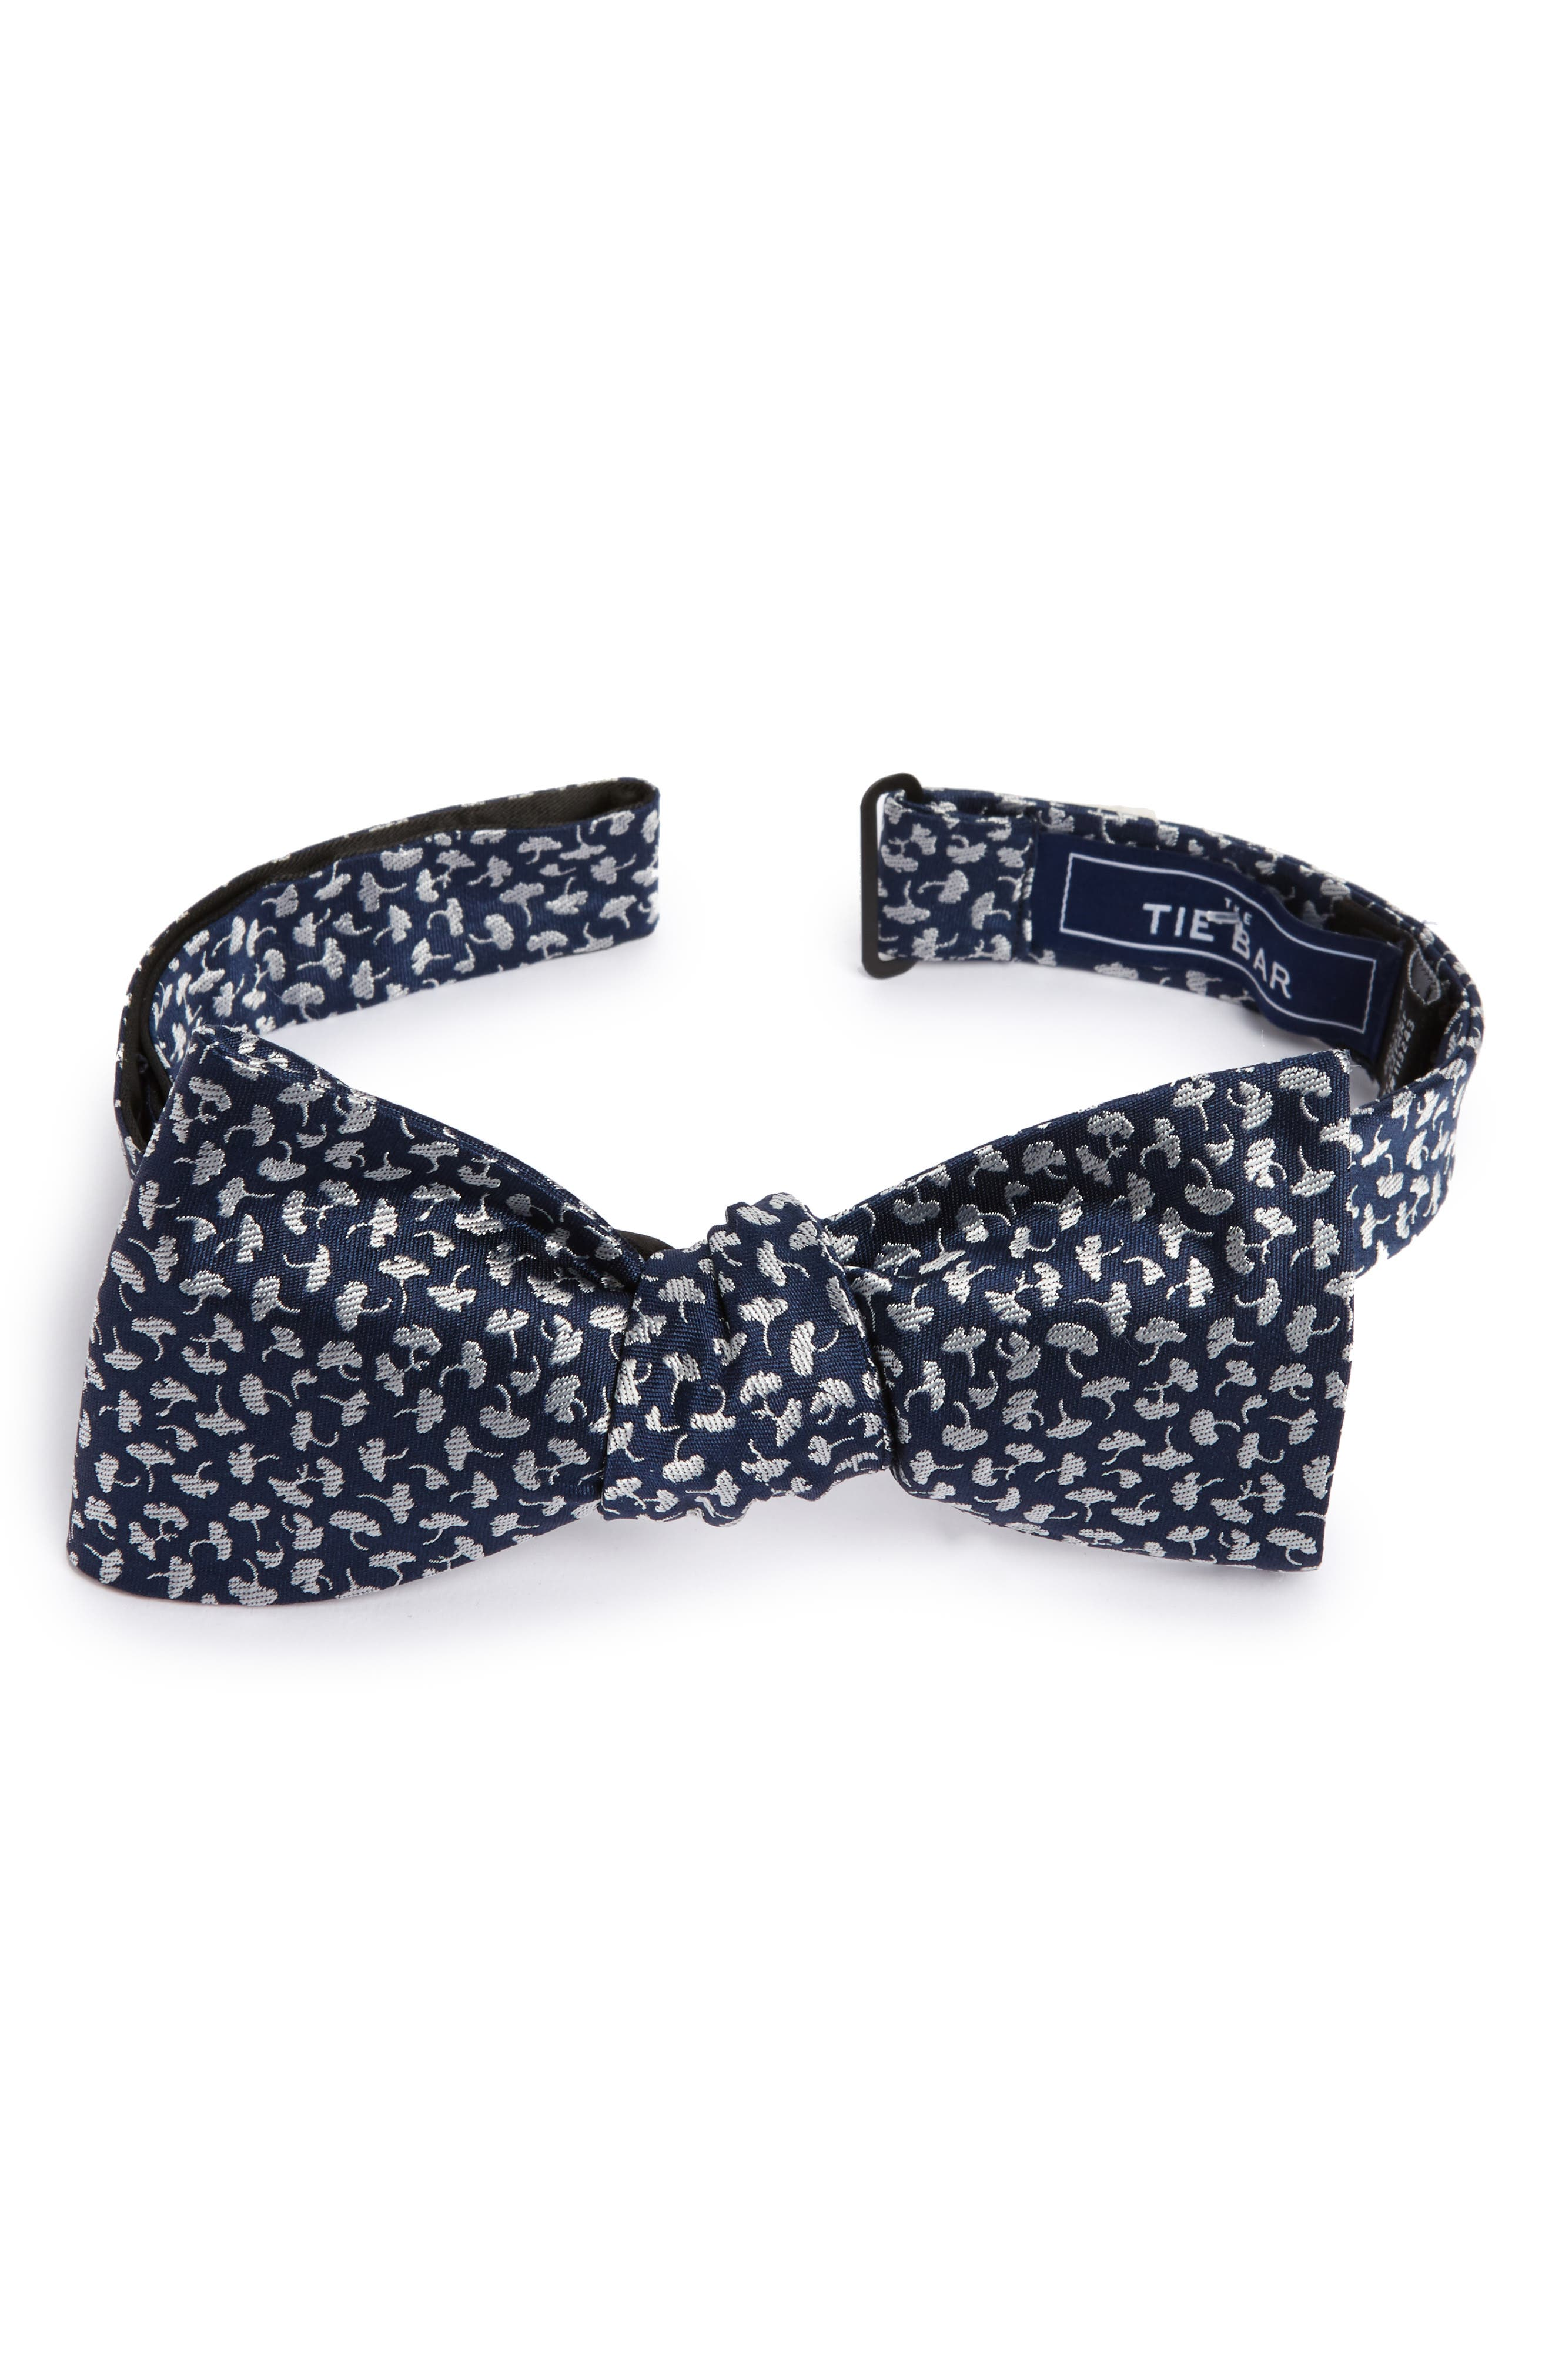 Alternate Image 1 Selected - The Tie Bar True Floral Silk Bow Tie